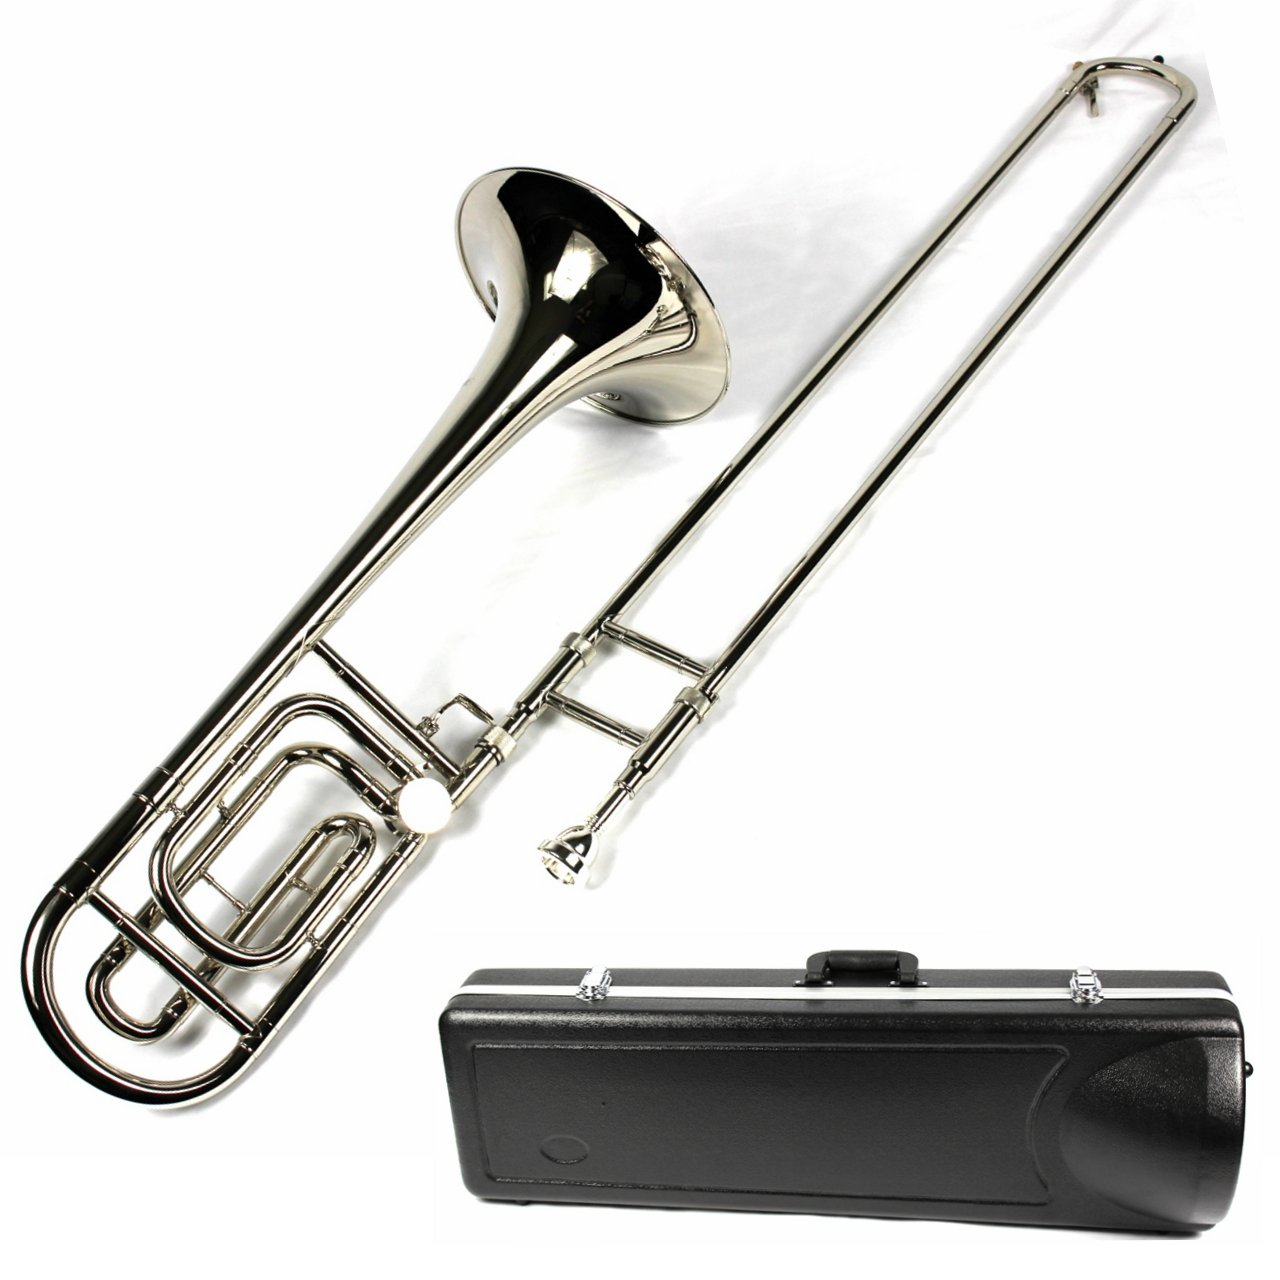 Brand New Bb/F Tenor Trombone w/ Case and Mouthpiece- Nickel Plated Finish by Moz